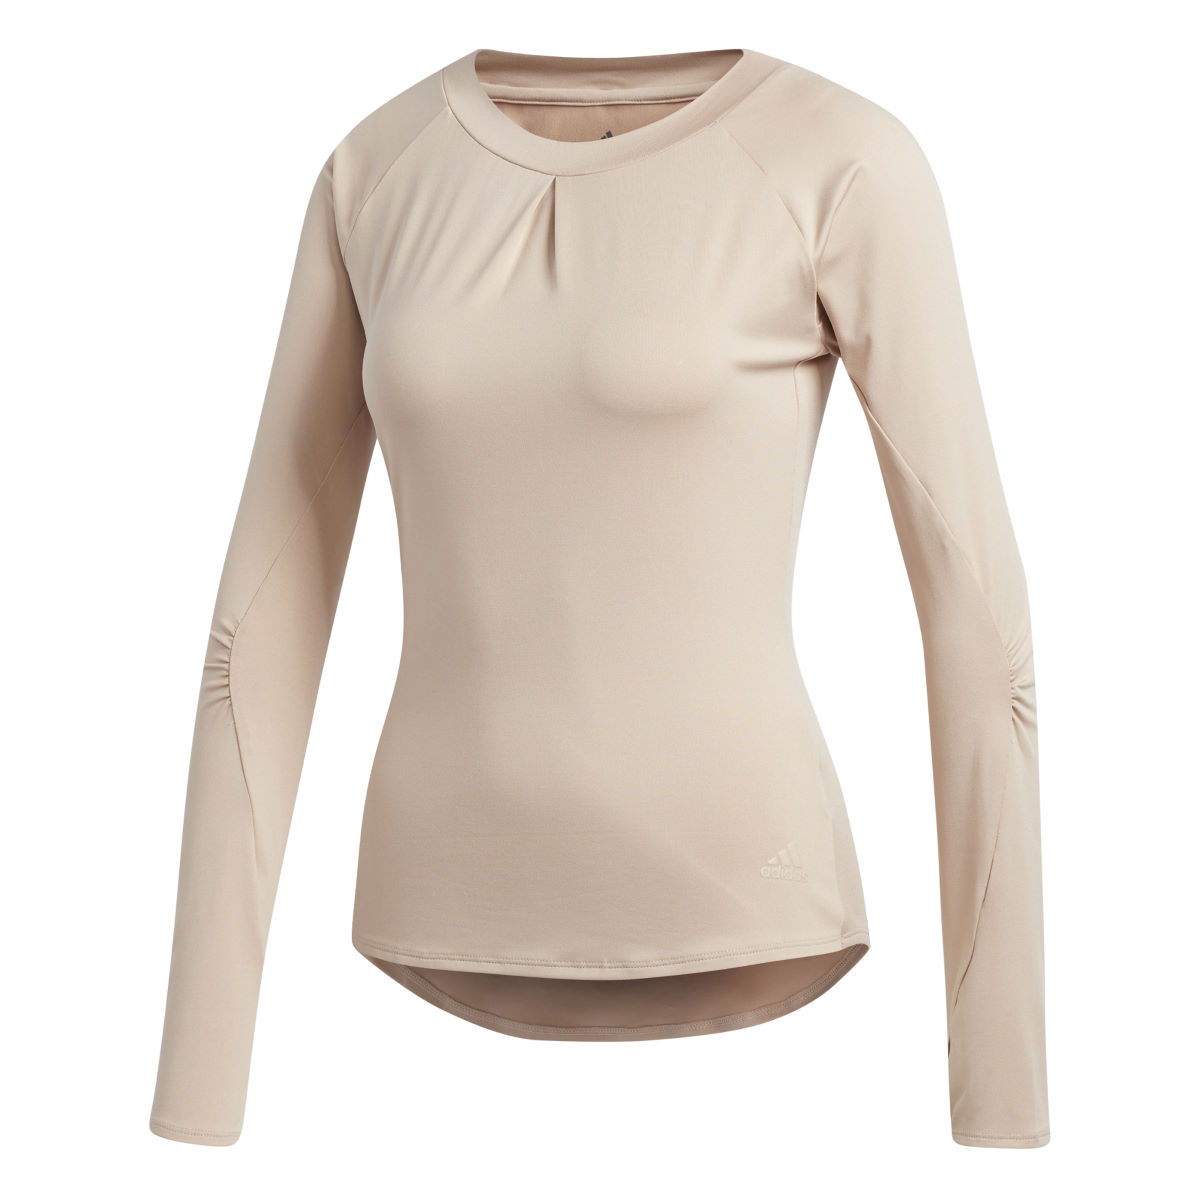 Maillot Femme adidas TKO UV (manches longues) - Small ASH PEARL